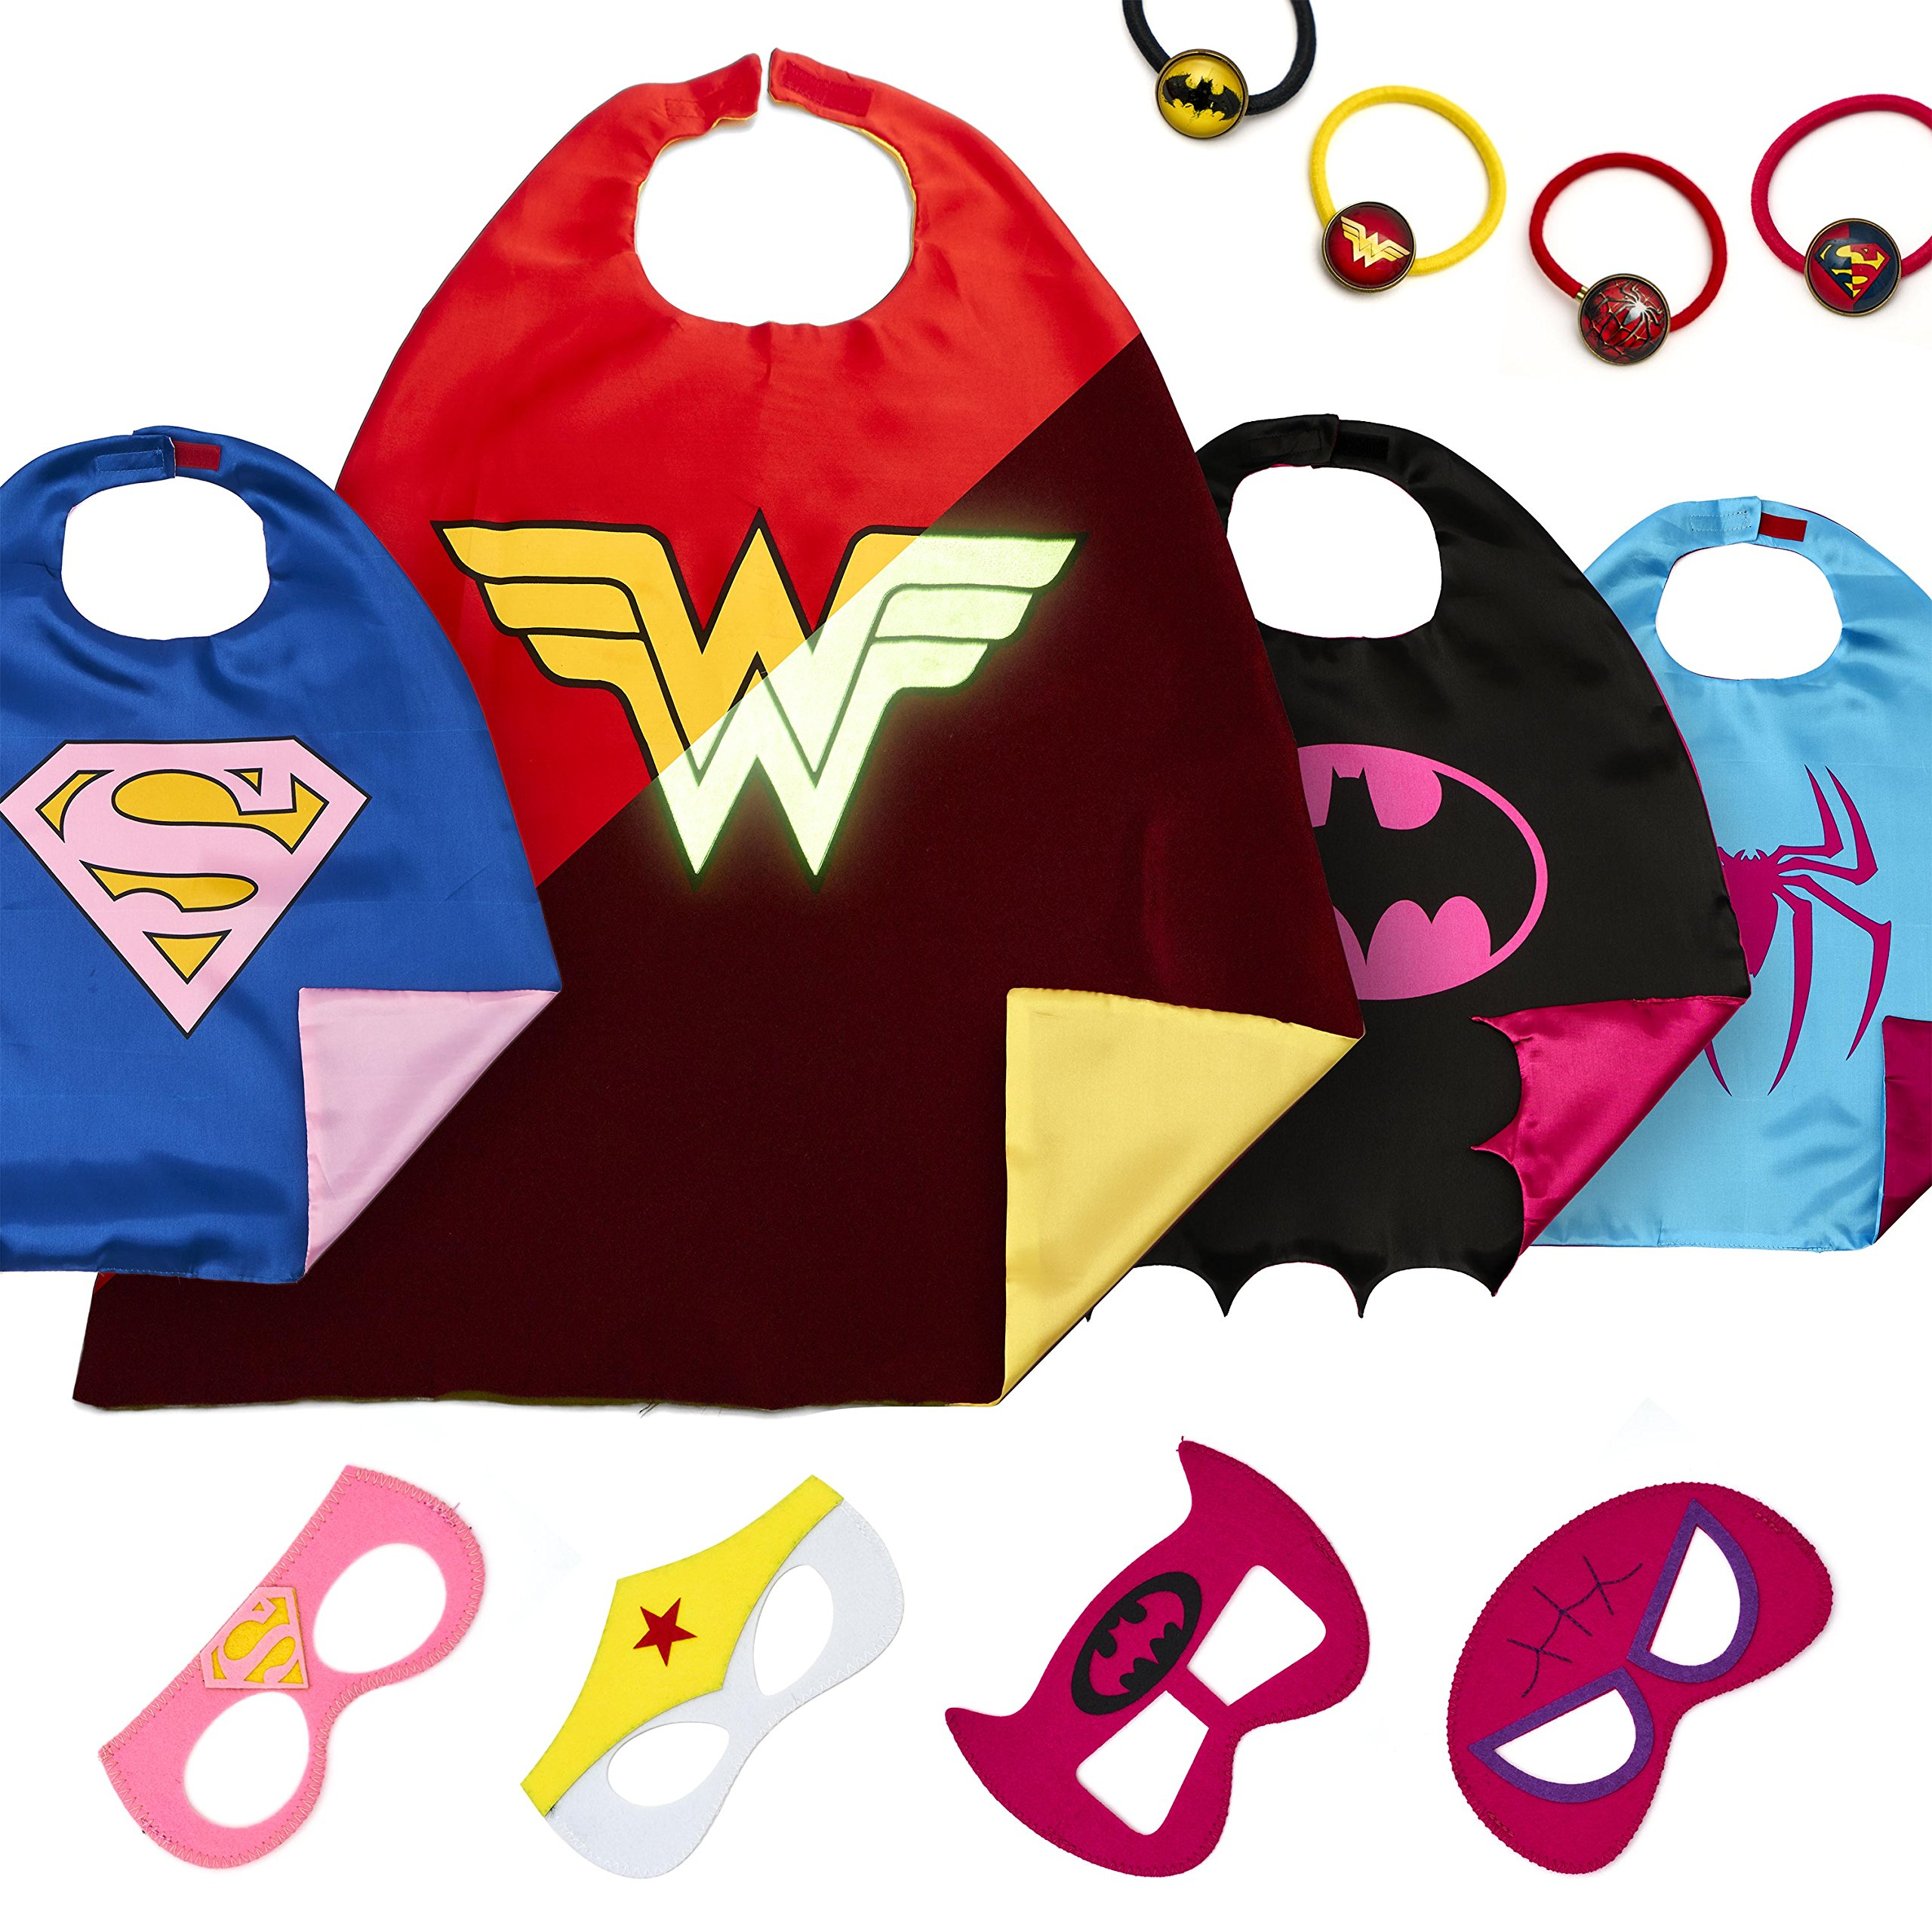 Dropplex 4 Superhero Capes for Kids - Super Hero Toys & Costumes Birthday Party Supplies (Girls)